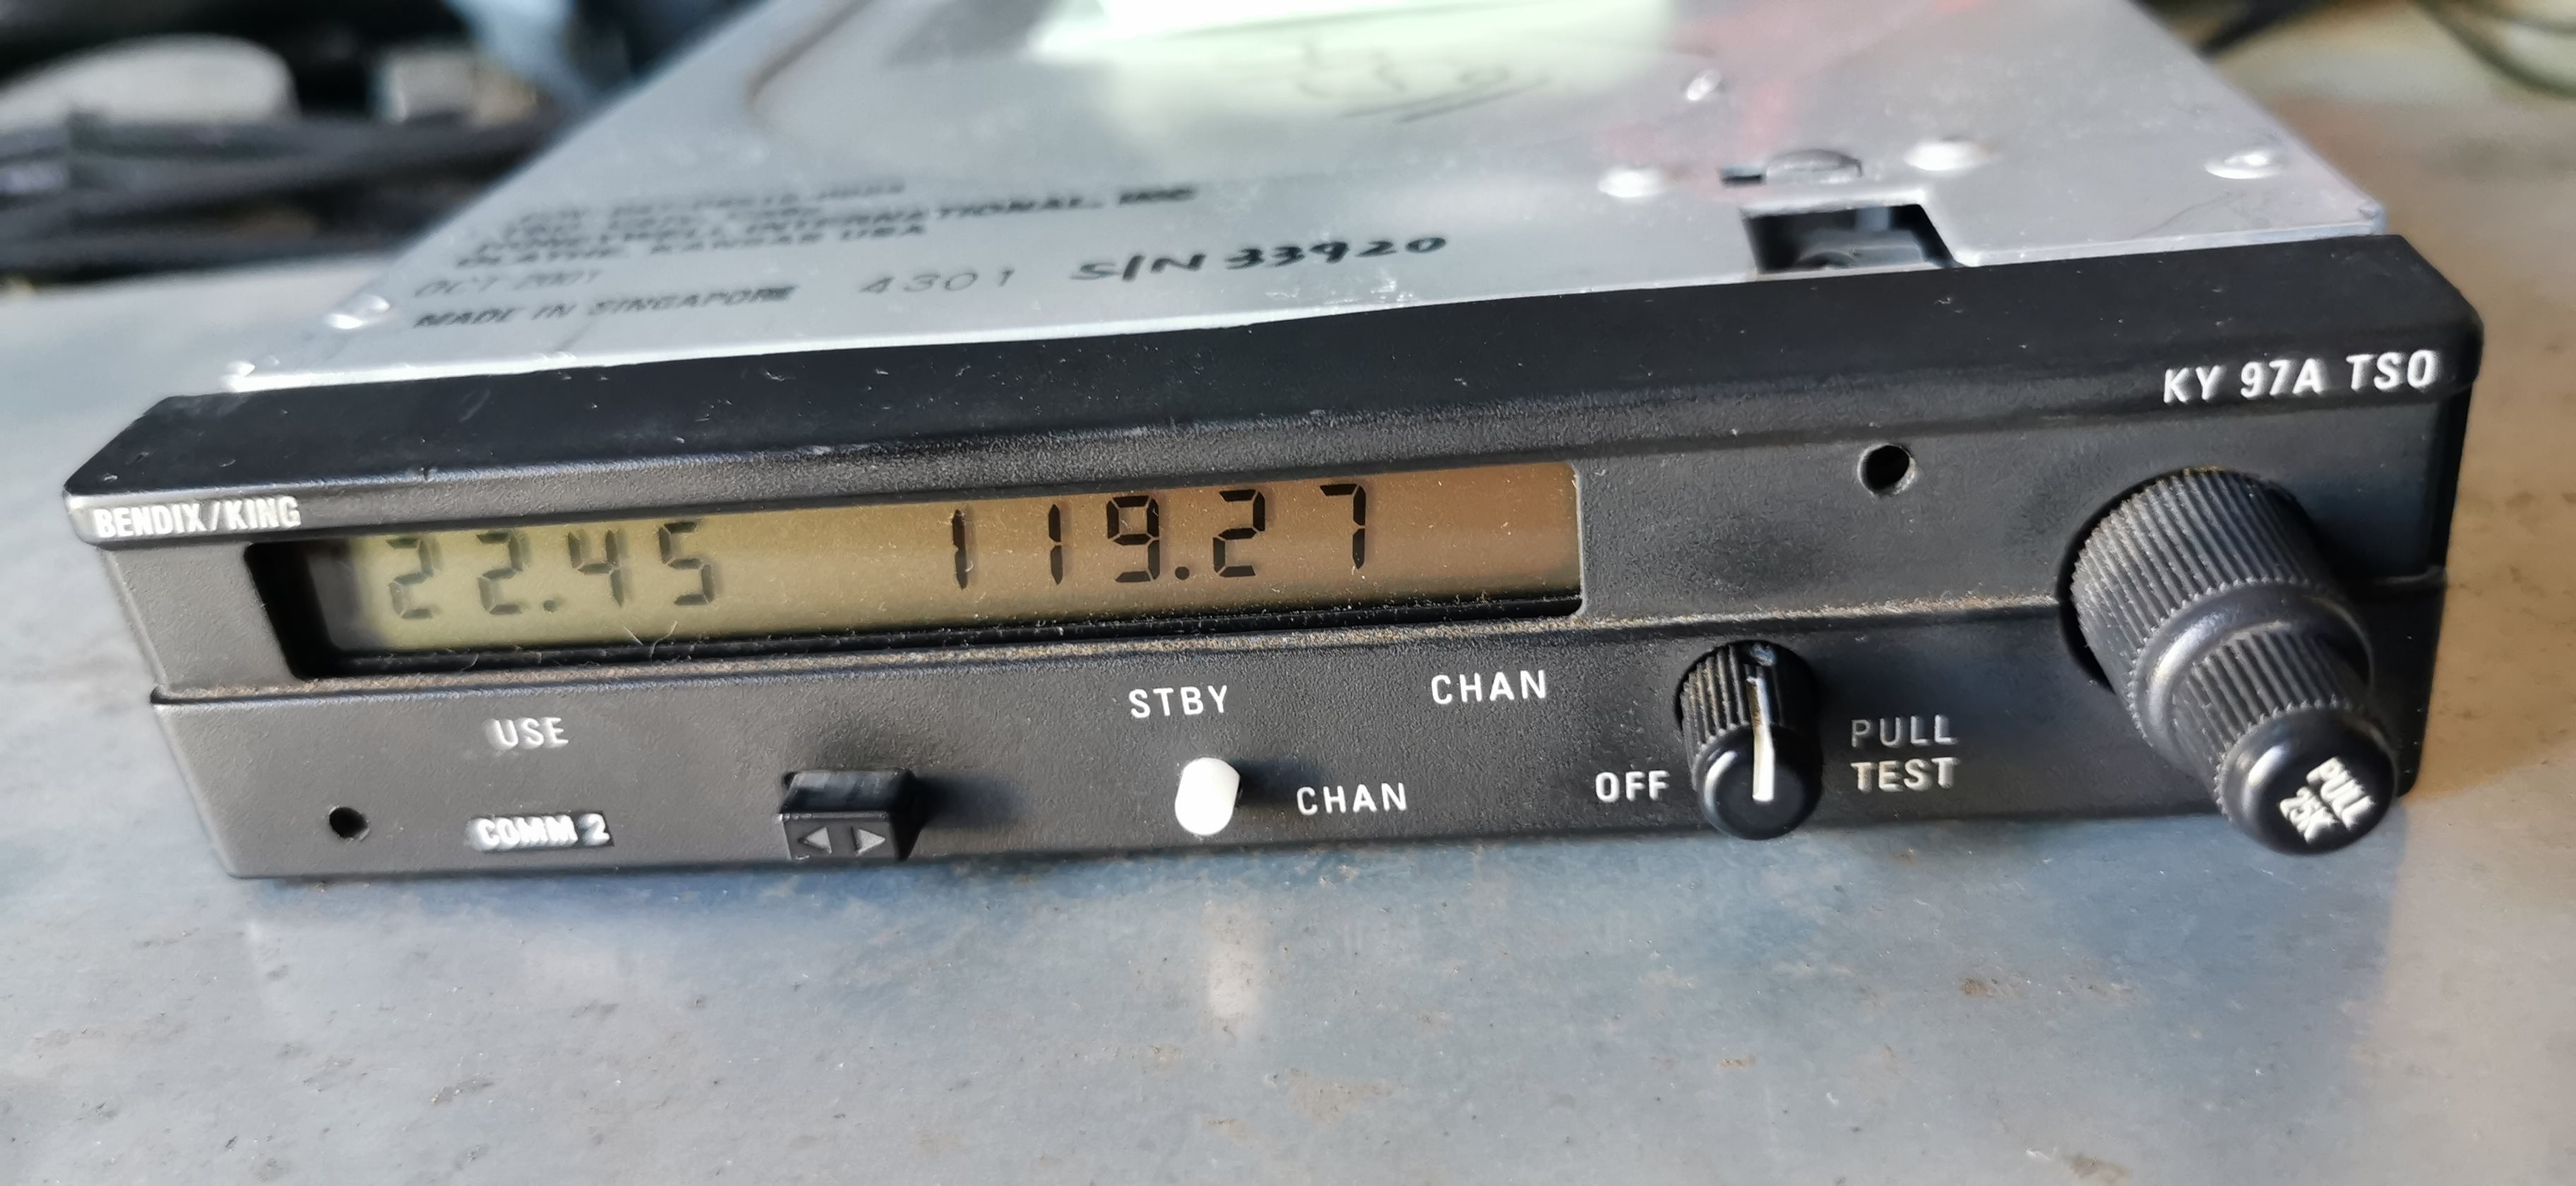 Avionics  - Bendix King KY97A radio with caddy and connector